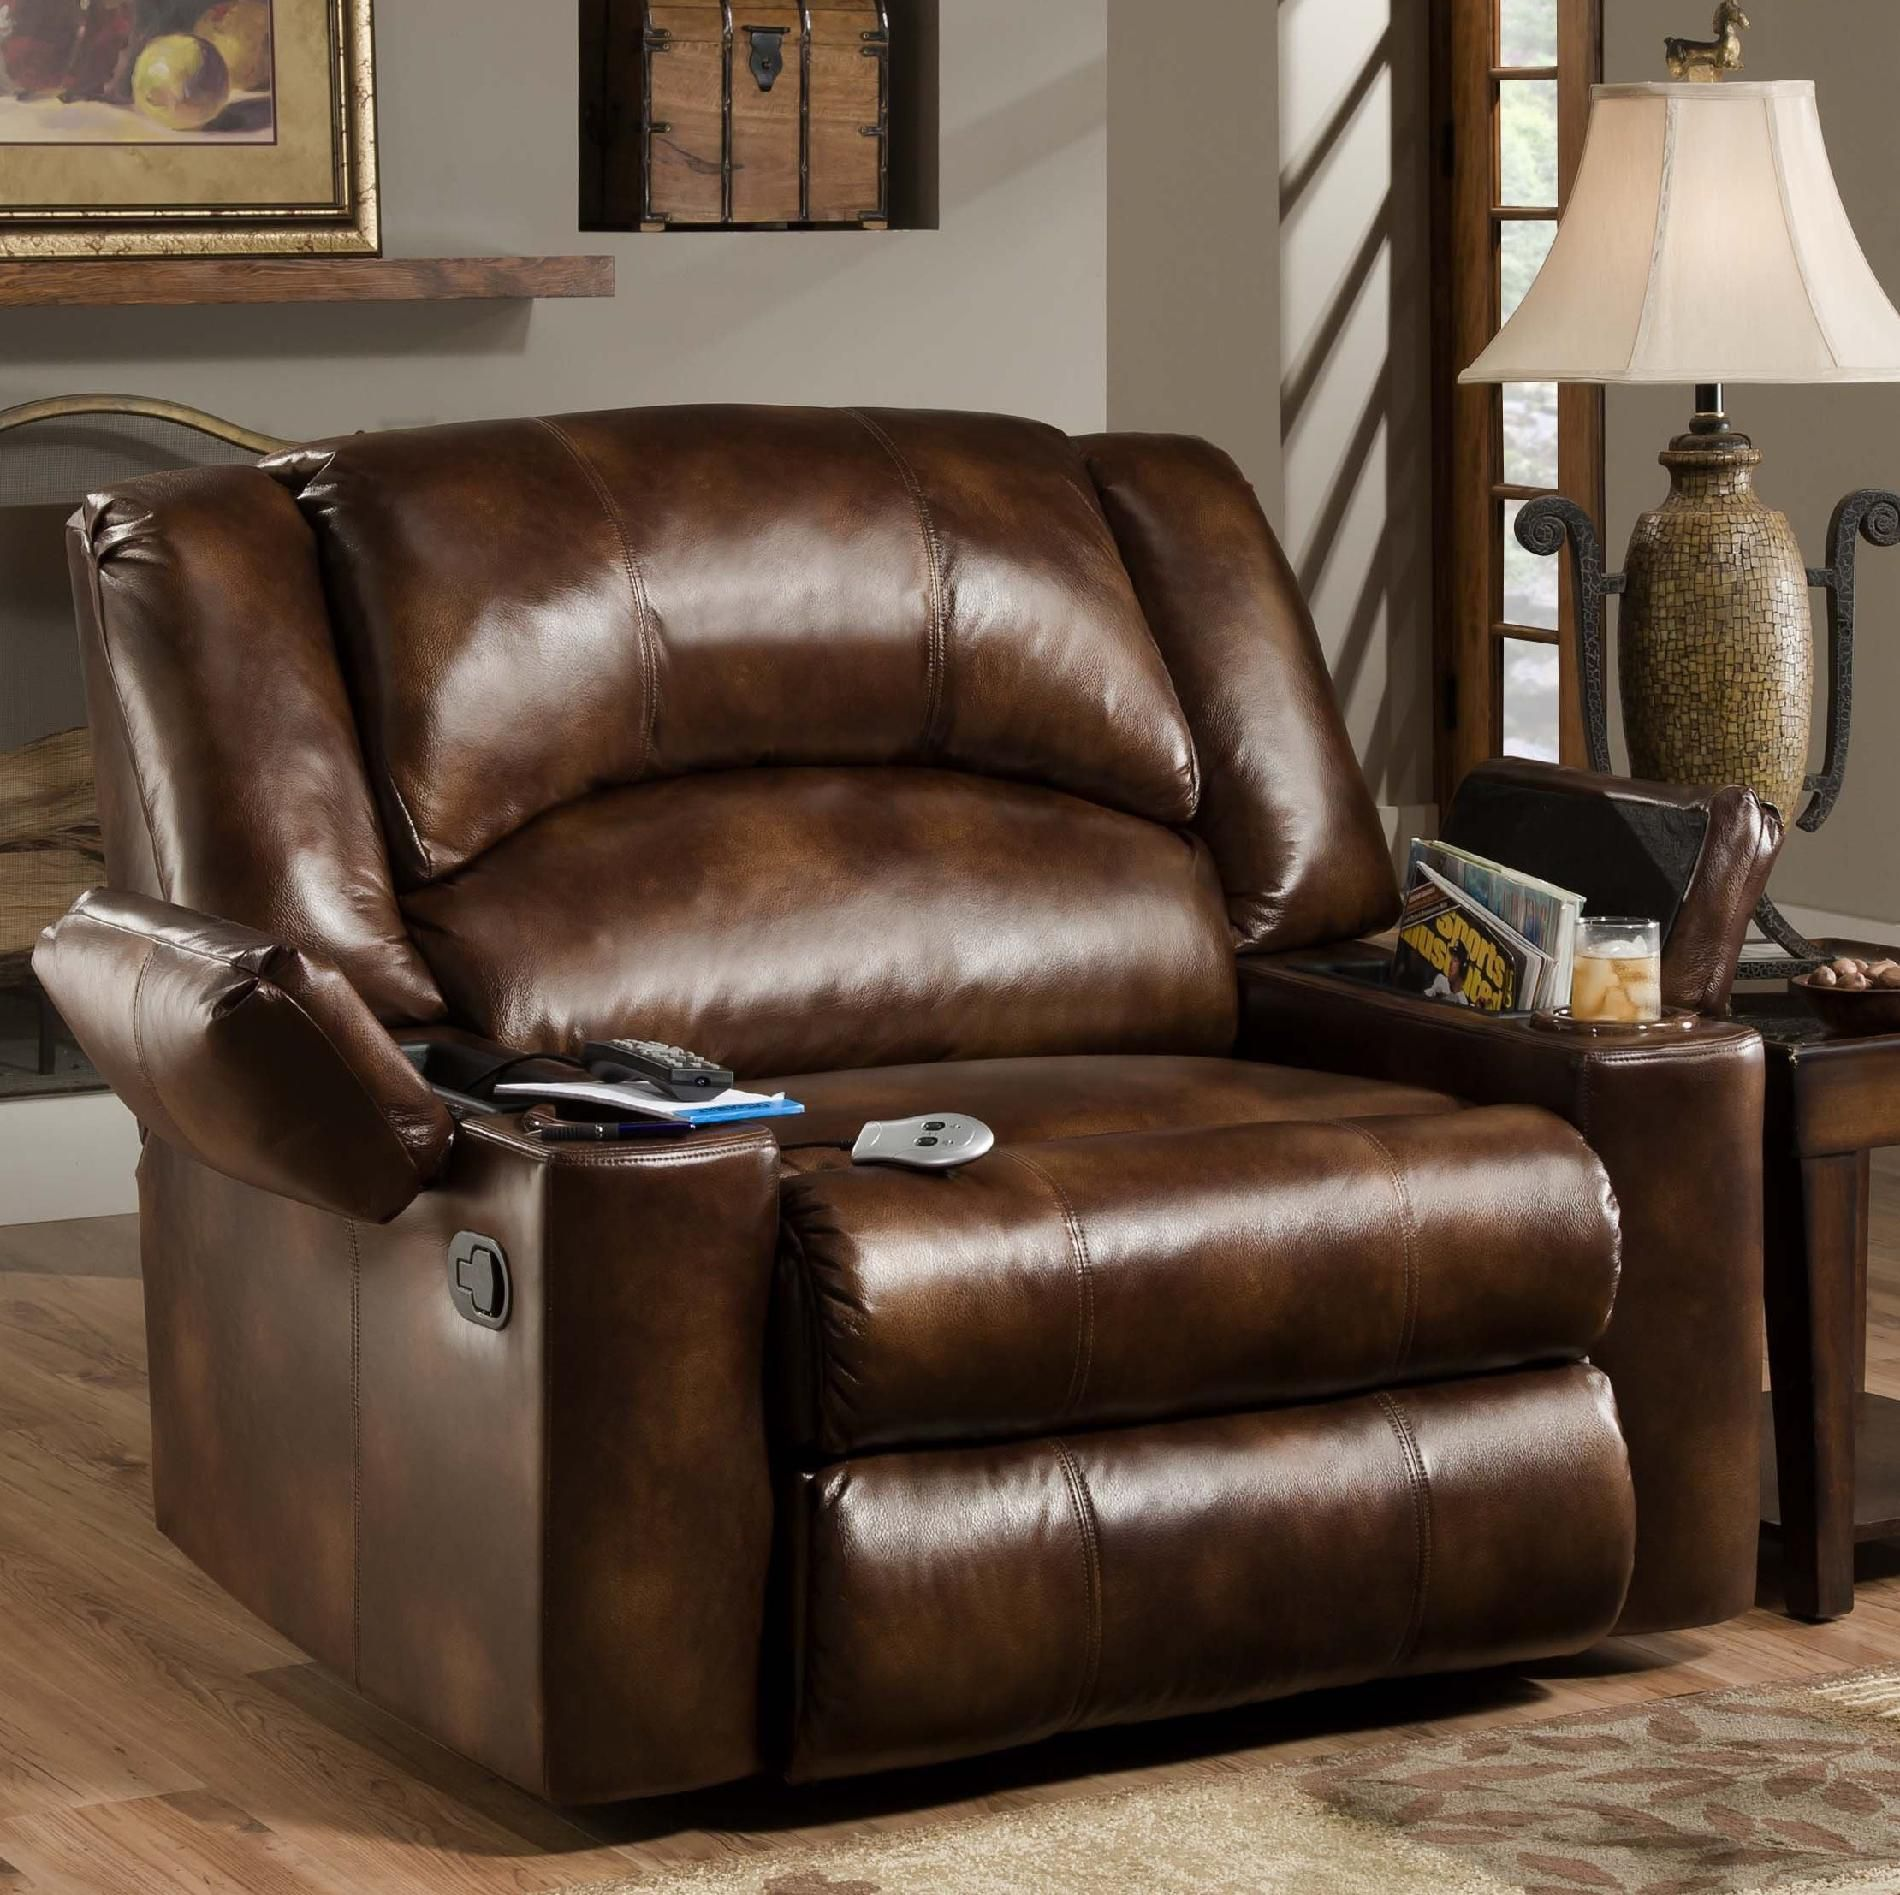 simmons encore bonded leather oversized downtime lounger recliners at hayneedle